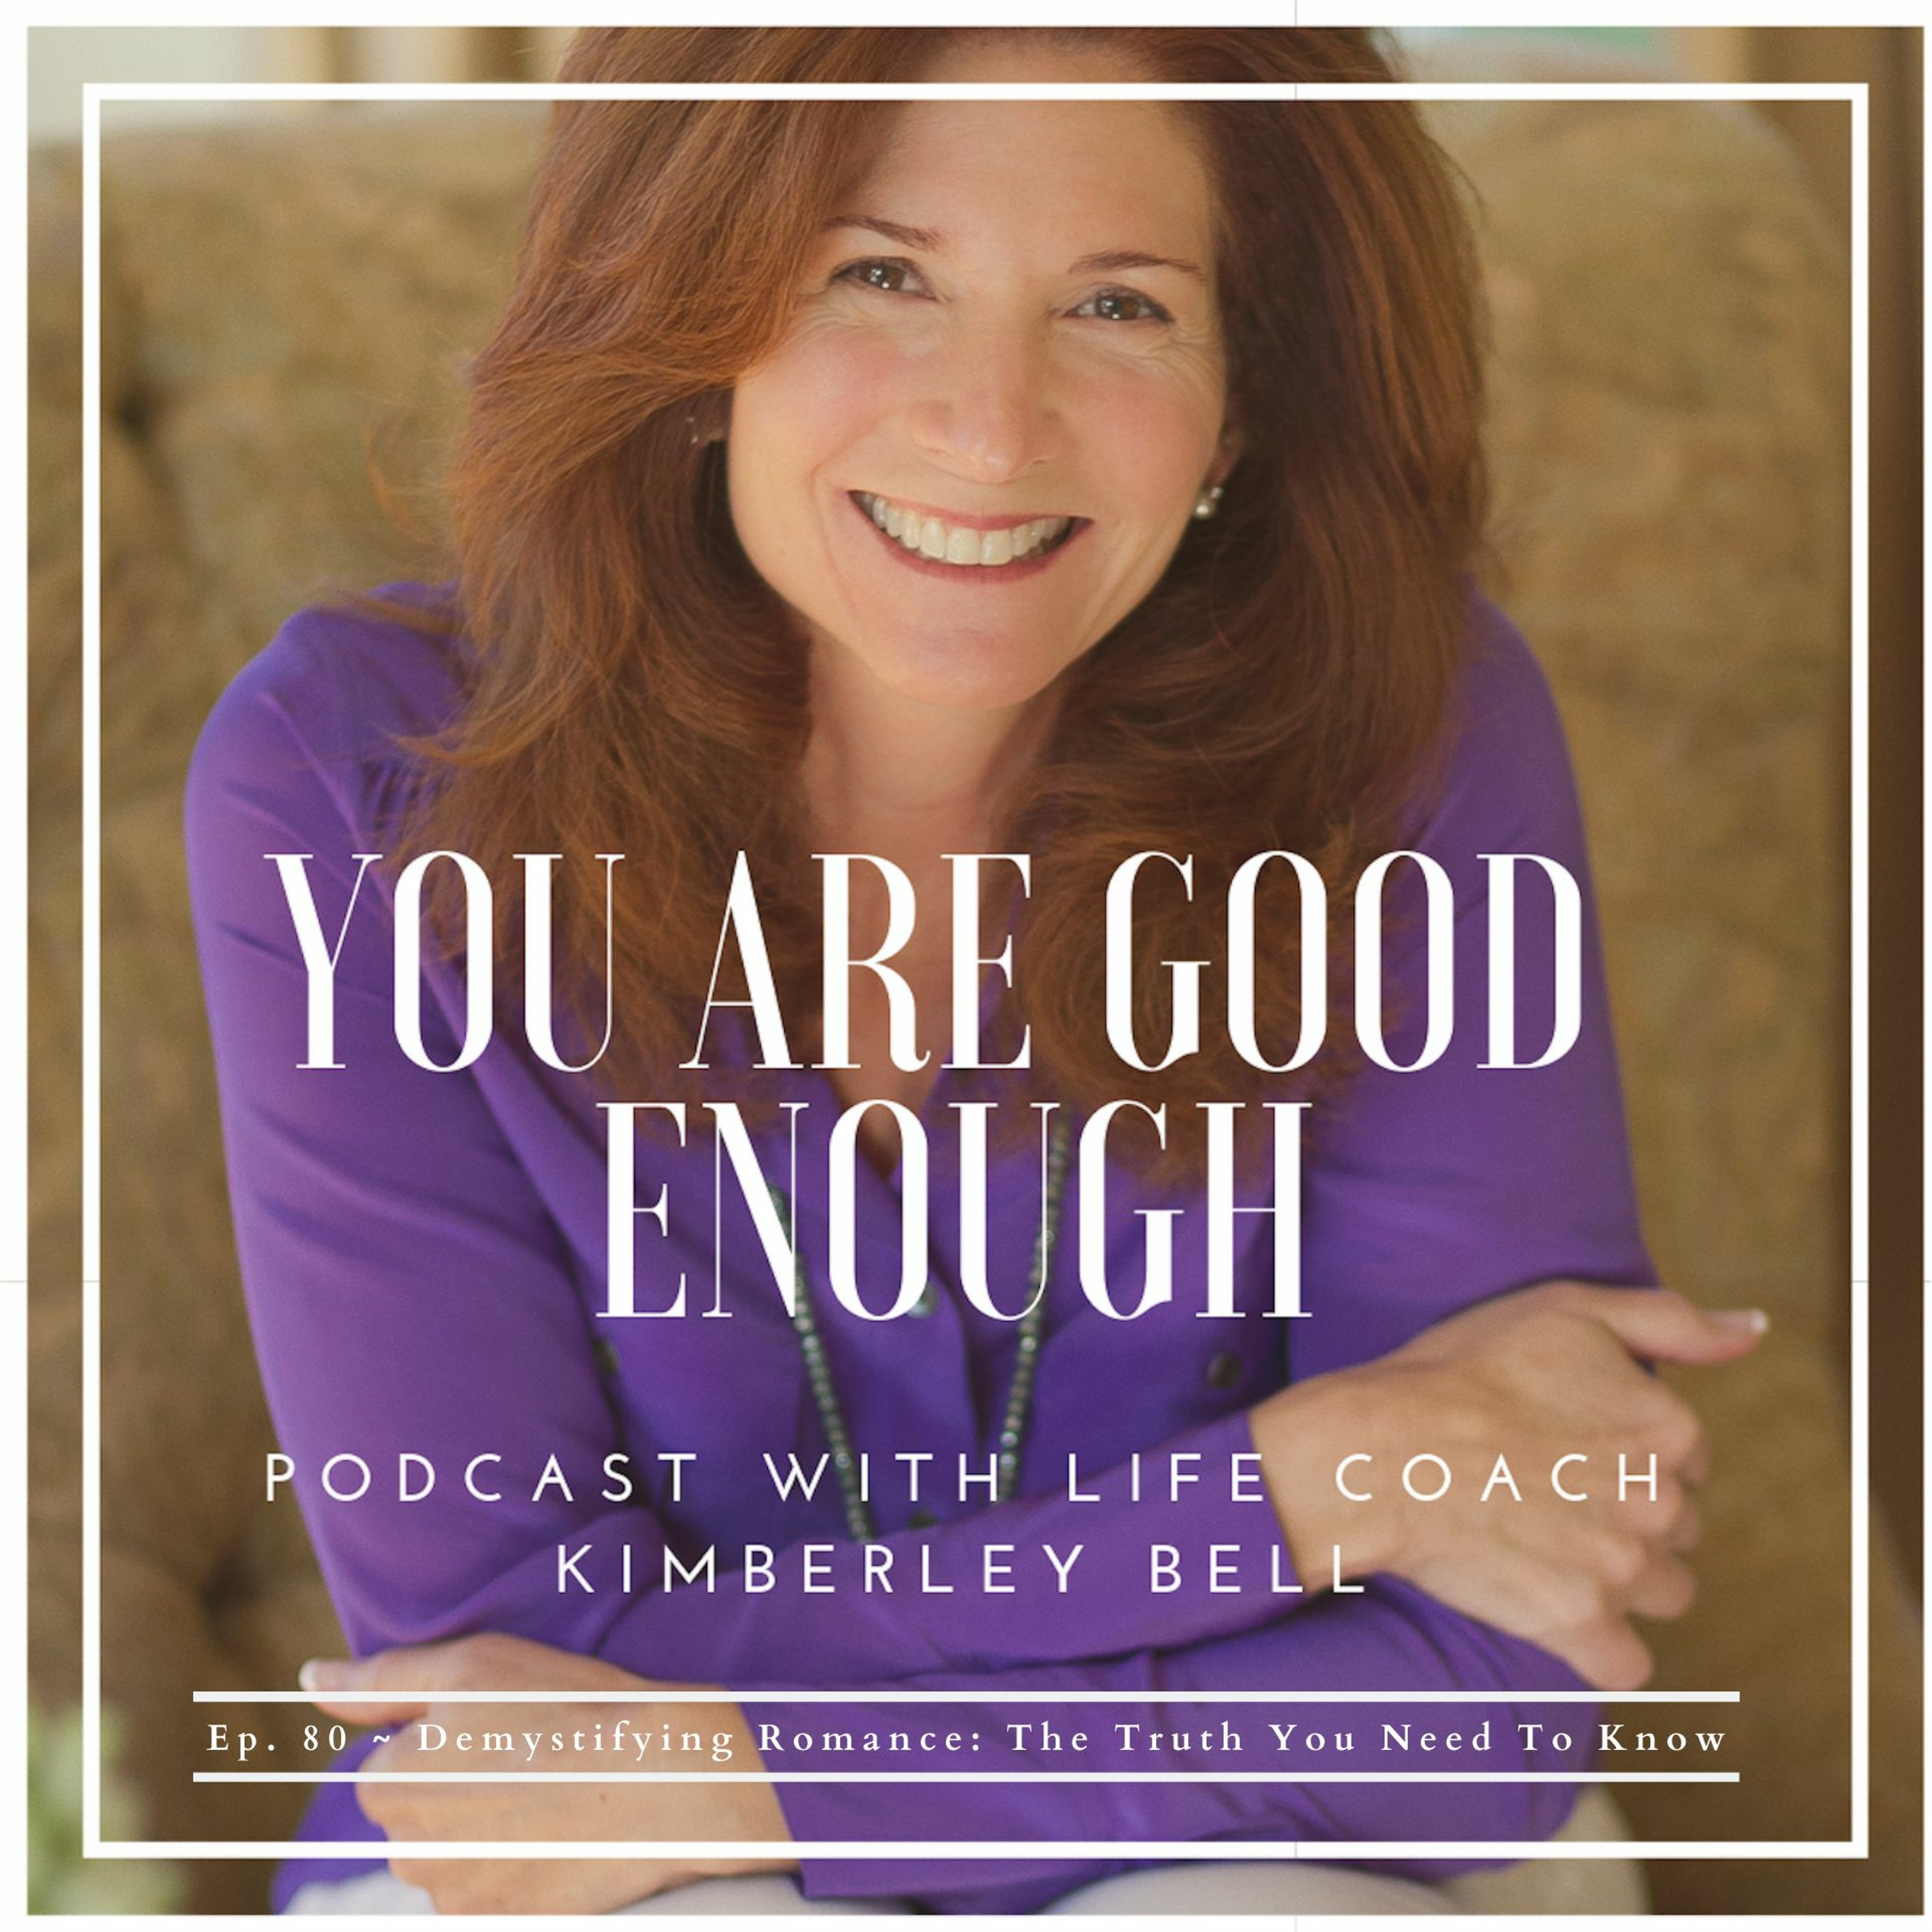 Ep. 80 ~ Demystifying Romance: The Truth You Need To Know